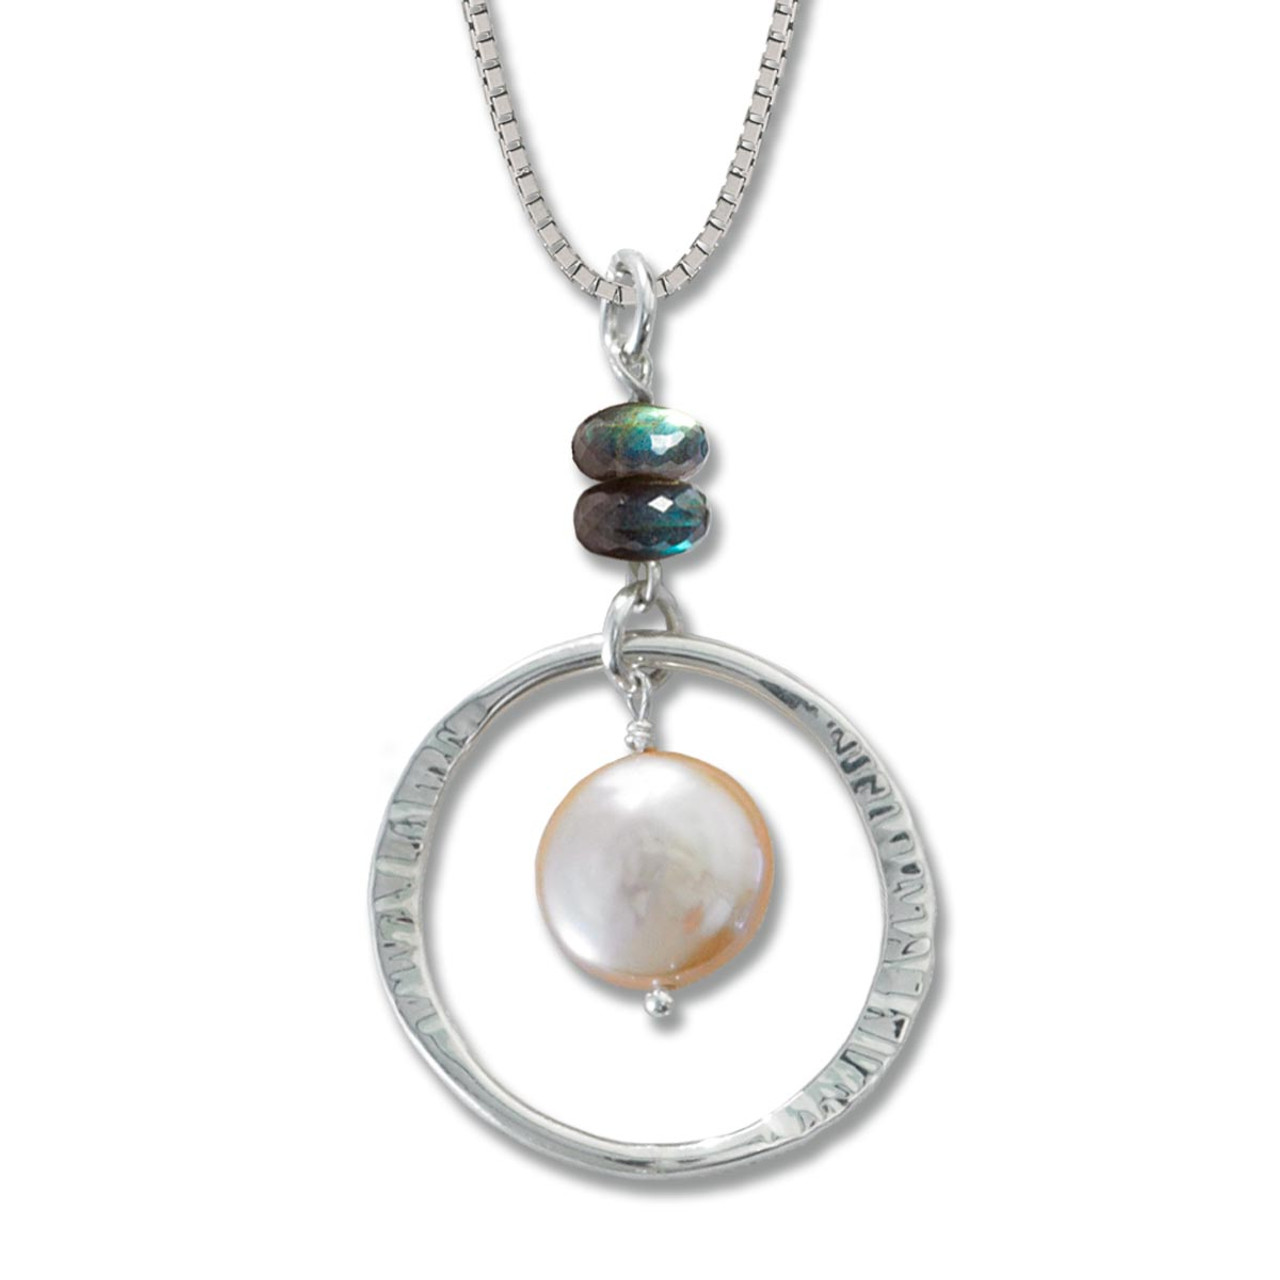 necklace lab collections product categories inc bezel set tags jewelry jupiter plata pendant sku labradorite ss silver sterling